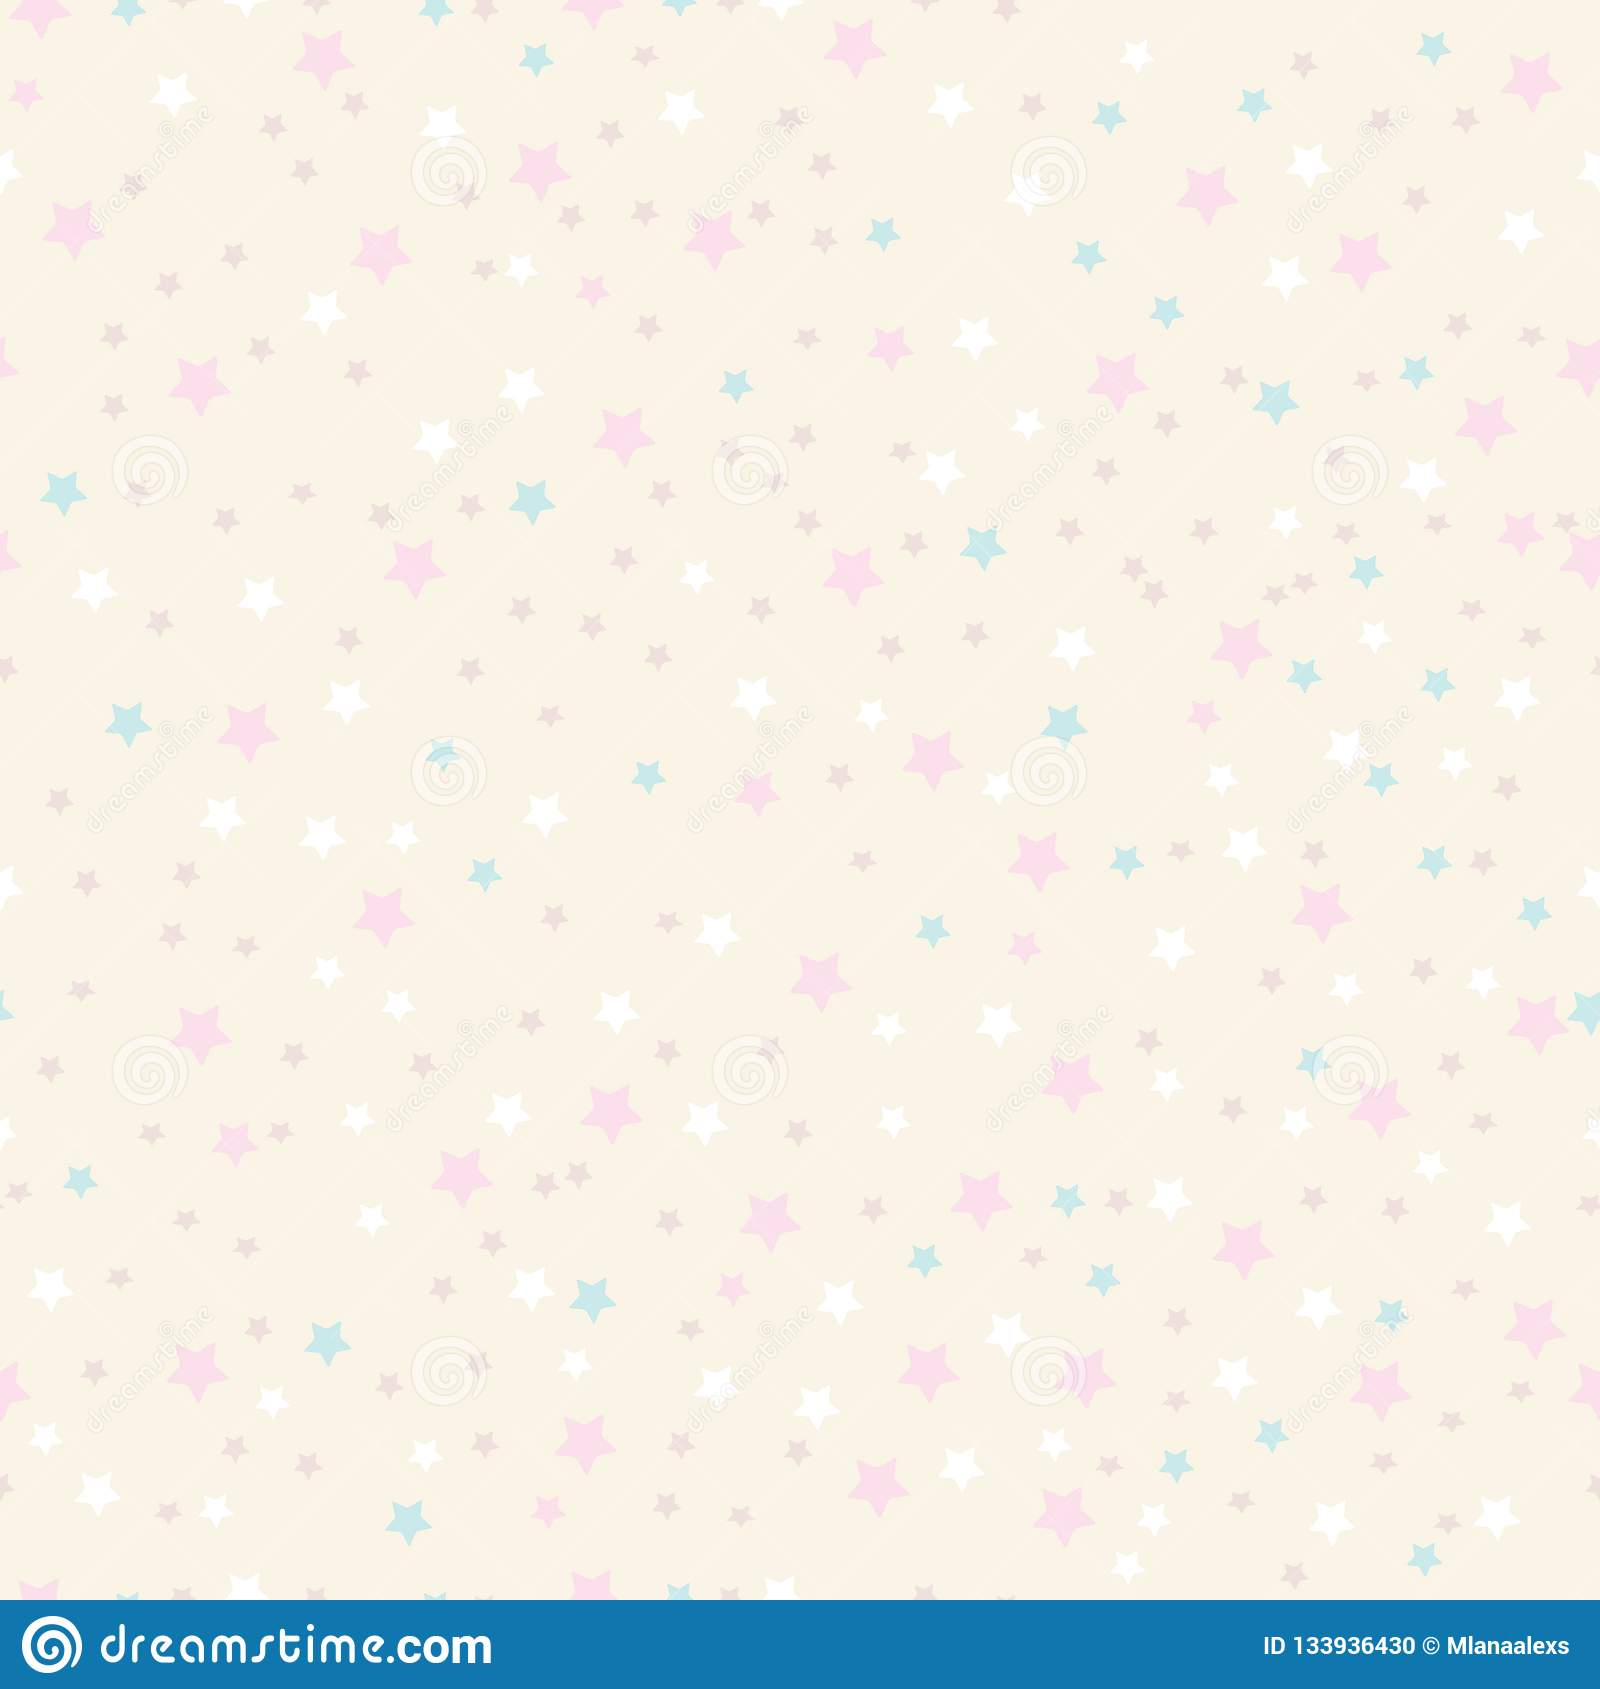 Cute stars pattern. Night sky in pastel colors